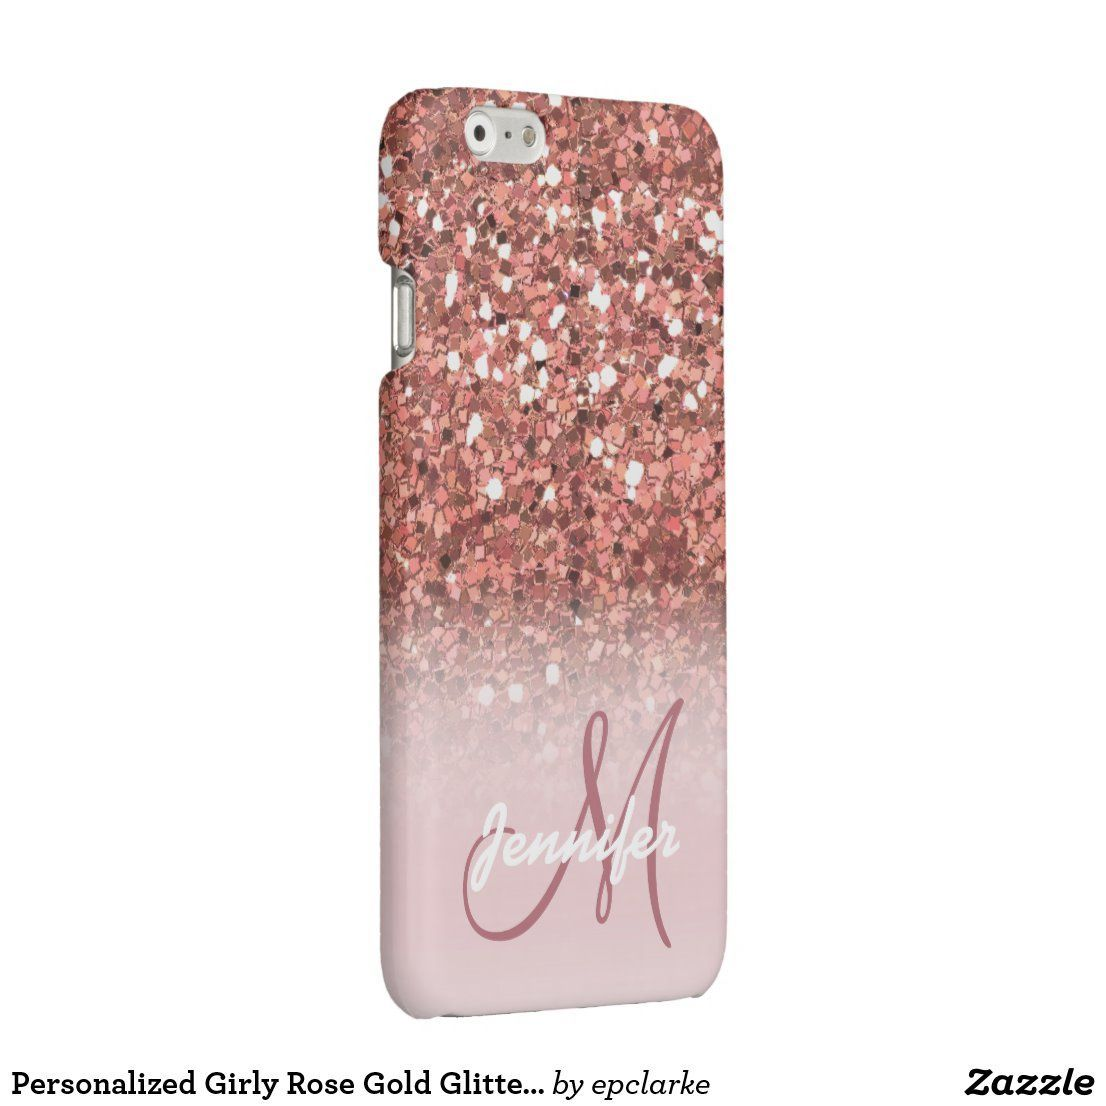 Personalized Girly Rose Gold Glitter Sparkles Name Iphone Case Zazzle Com Sparkly Iphone 6 Cas Sparkle Phone Case Glitter Iphone 6 Case Glitter Phone Cases